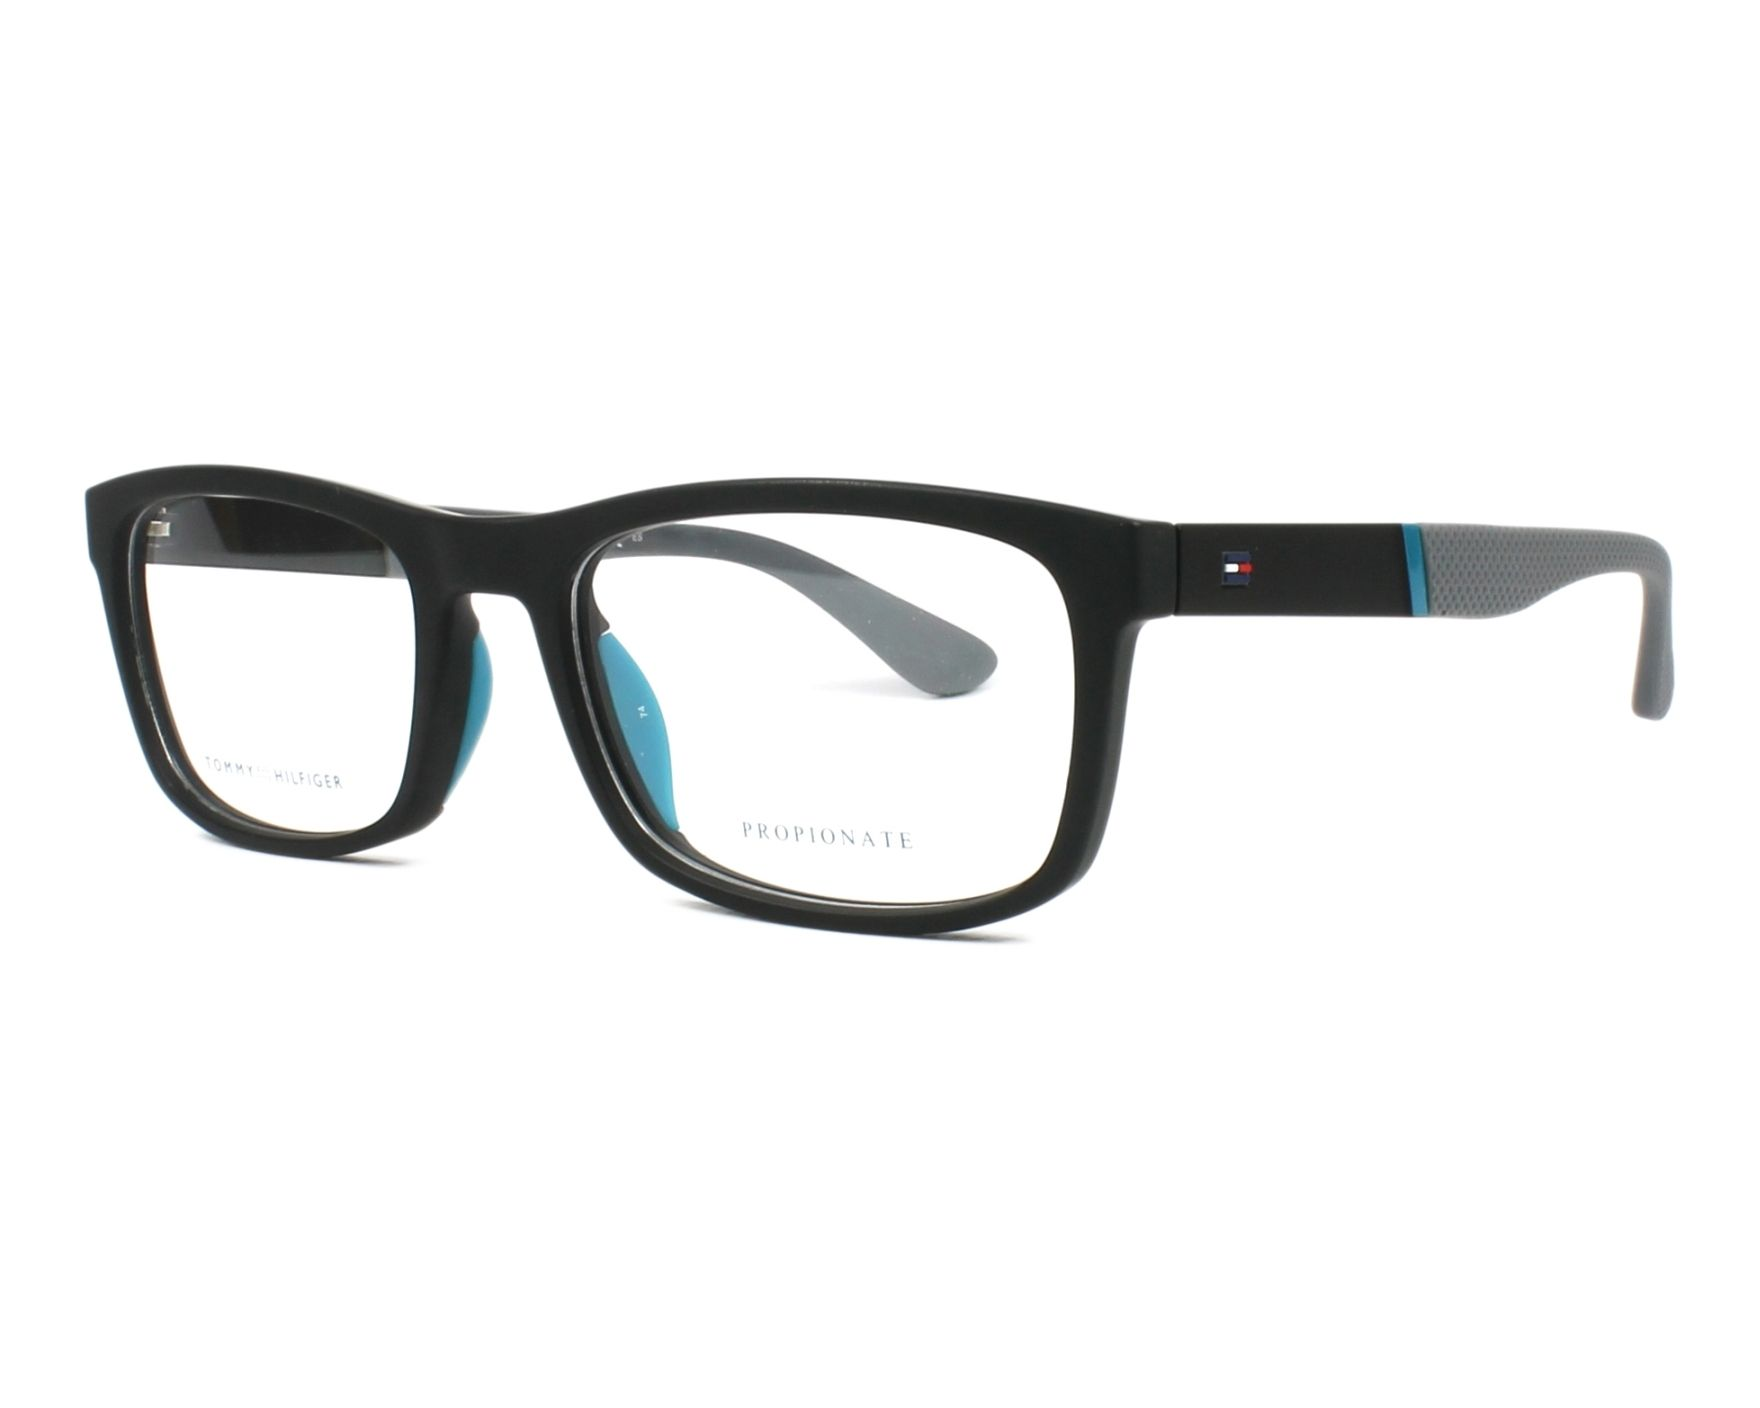 6d02bc00e68 eyeglasses Tommy Hilfiger TH-1522 003 - Black Grey profile view